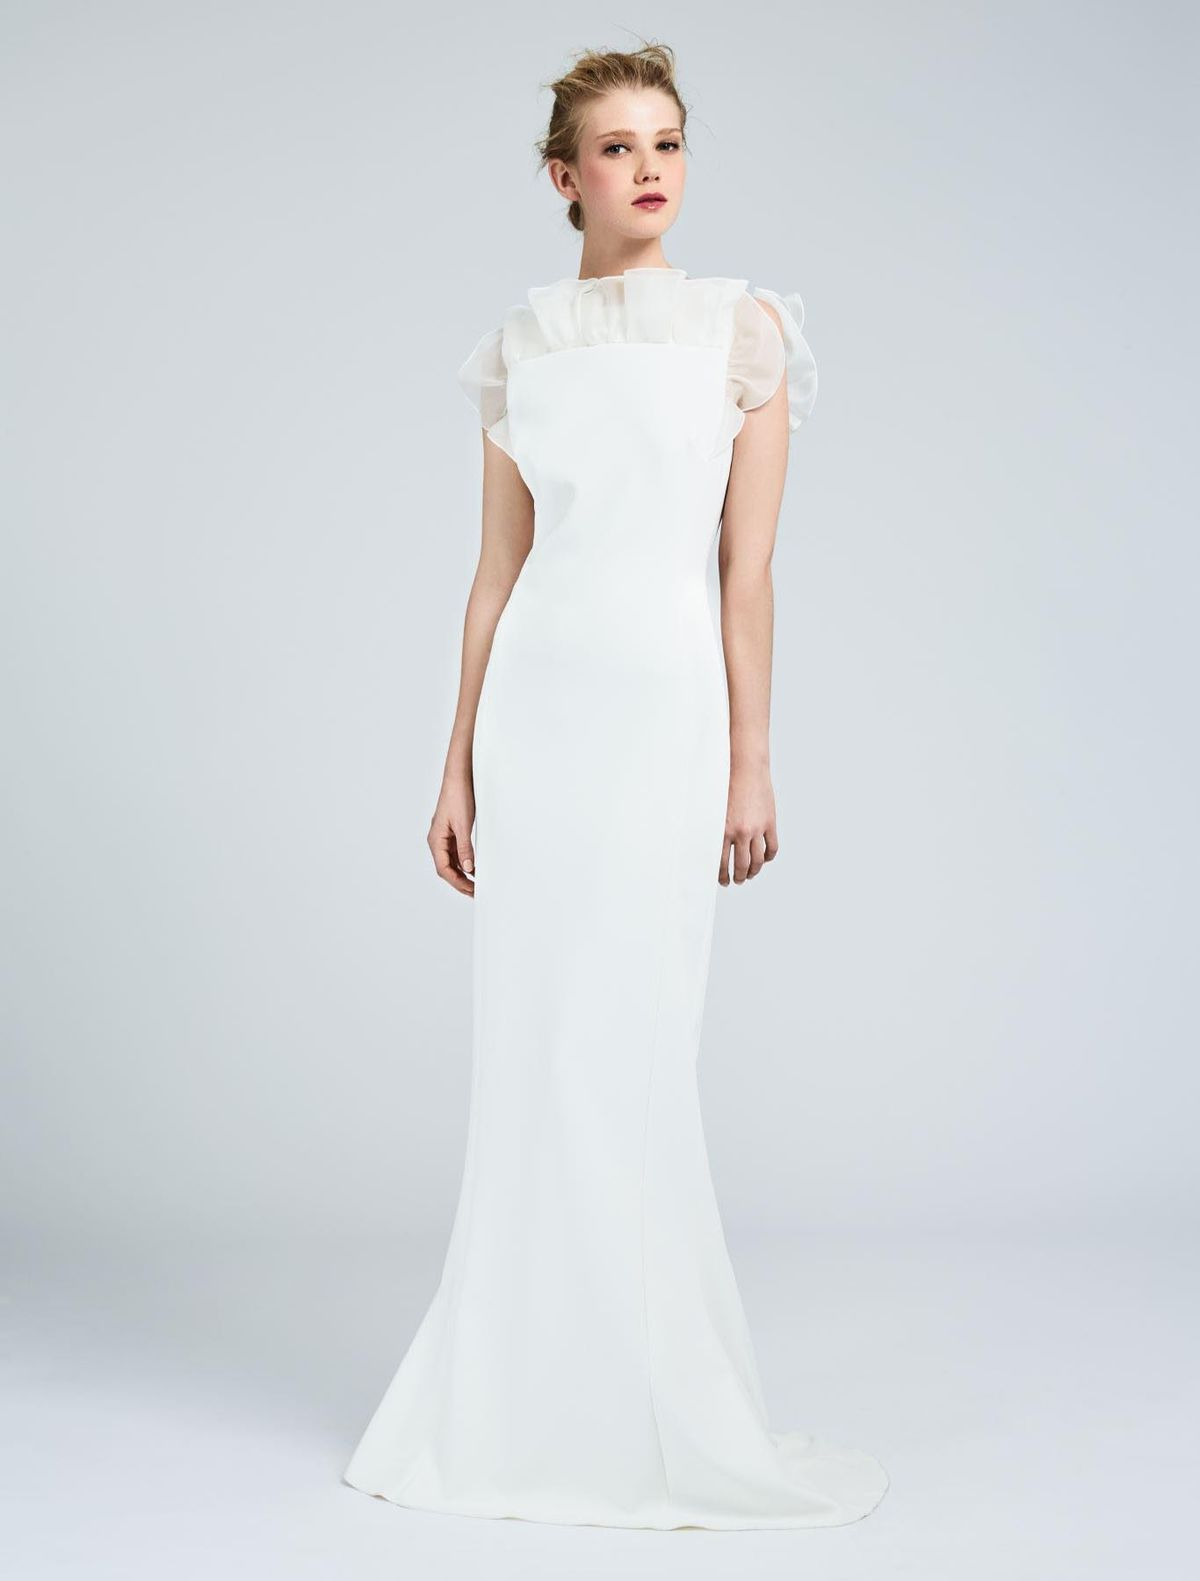 Max fall mara bridal collection foto